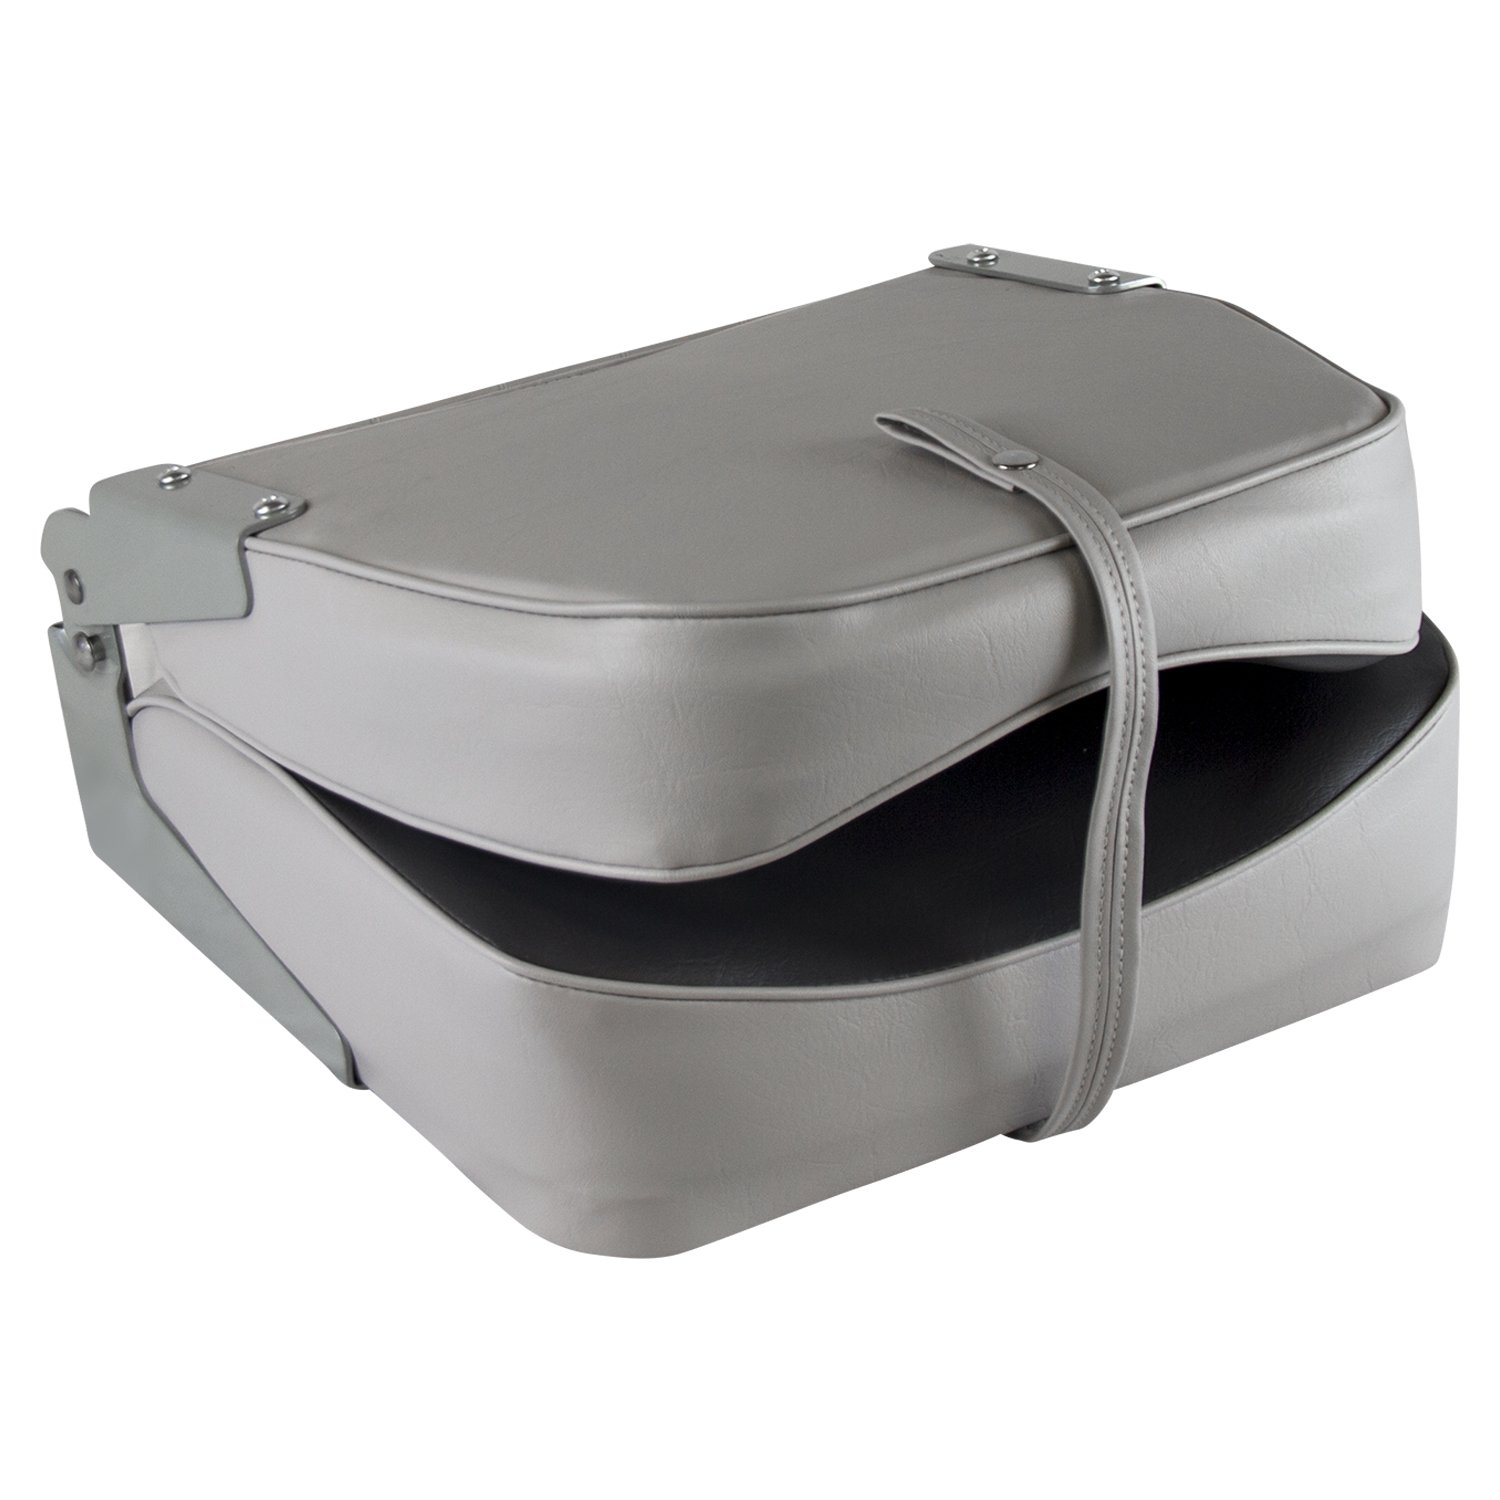 Wise 8WD734PLS-661 Low Back Boat Seat, Grey/Red by Wise (Image #3)